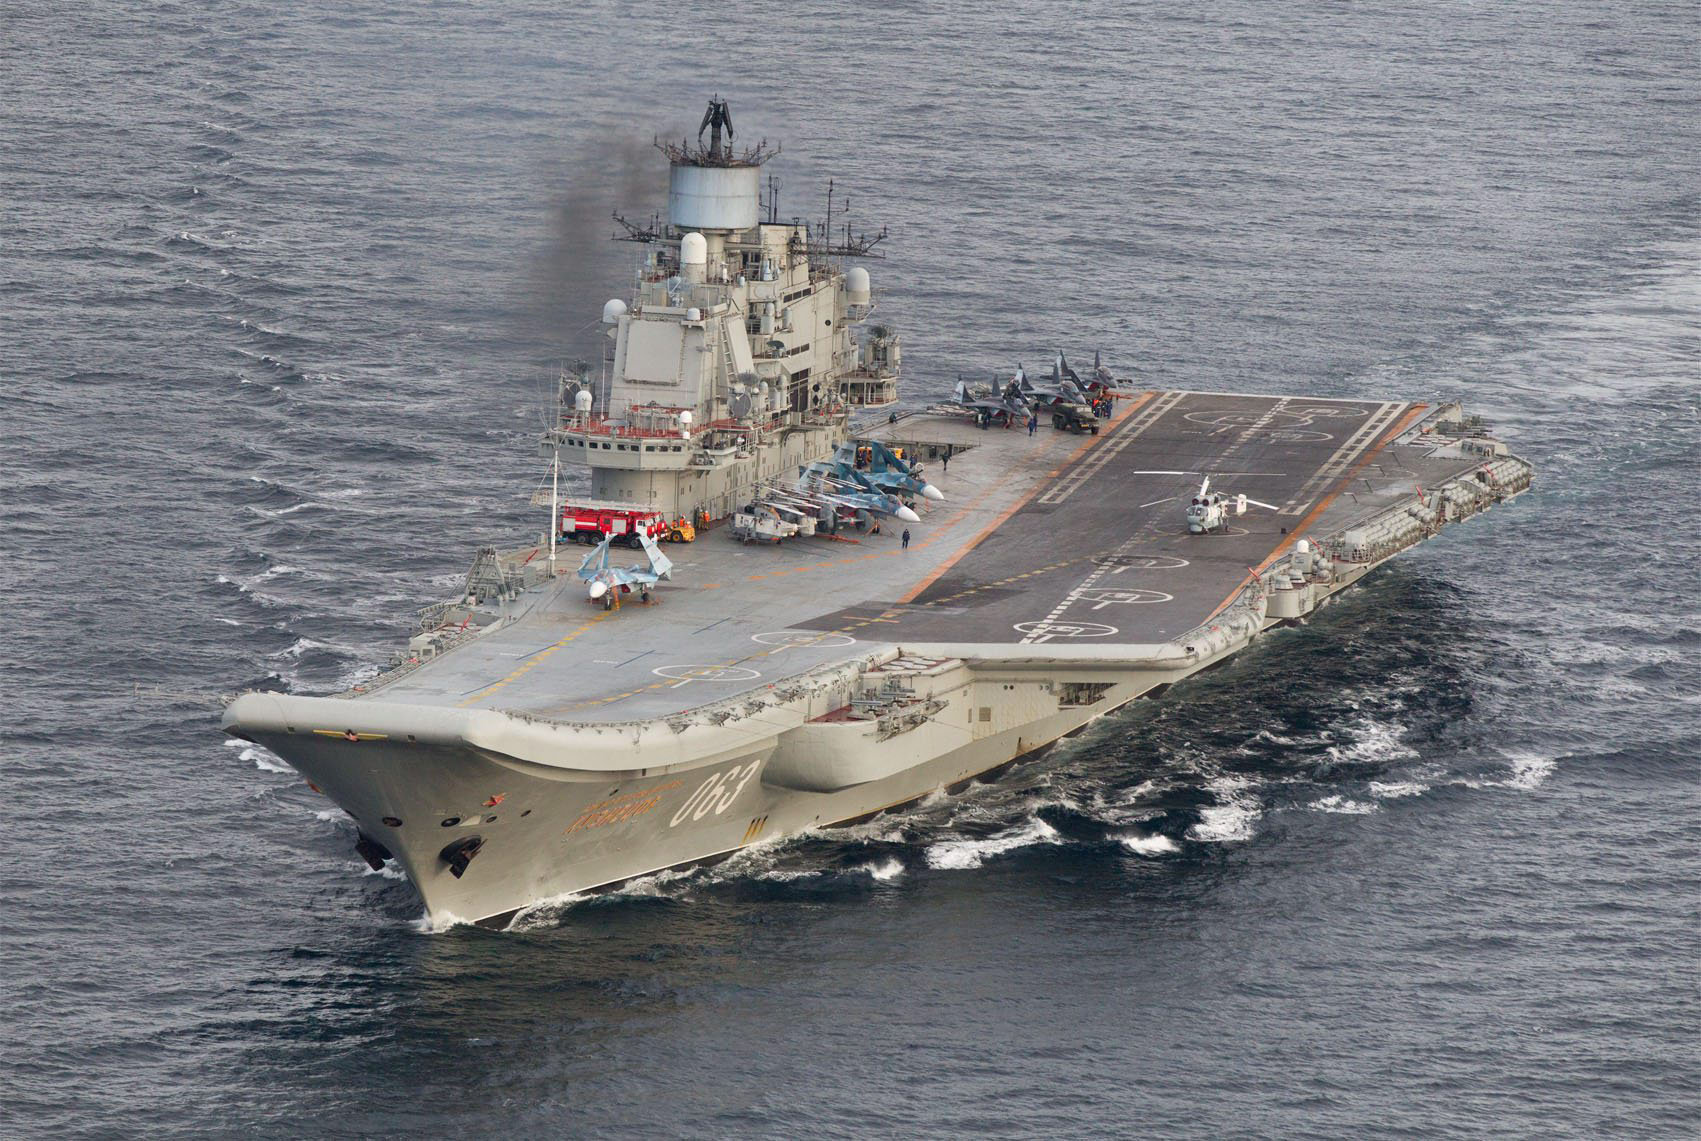 A photo taken from a Norwegian surveillance aircraft shows Russian aircraft carrier Admiral Kuznetsov in international waters off the coast of Northern Norway